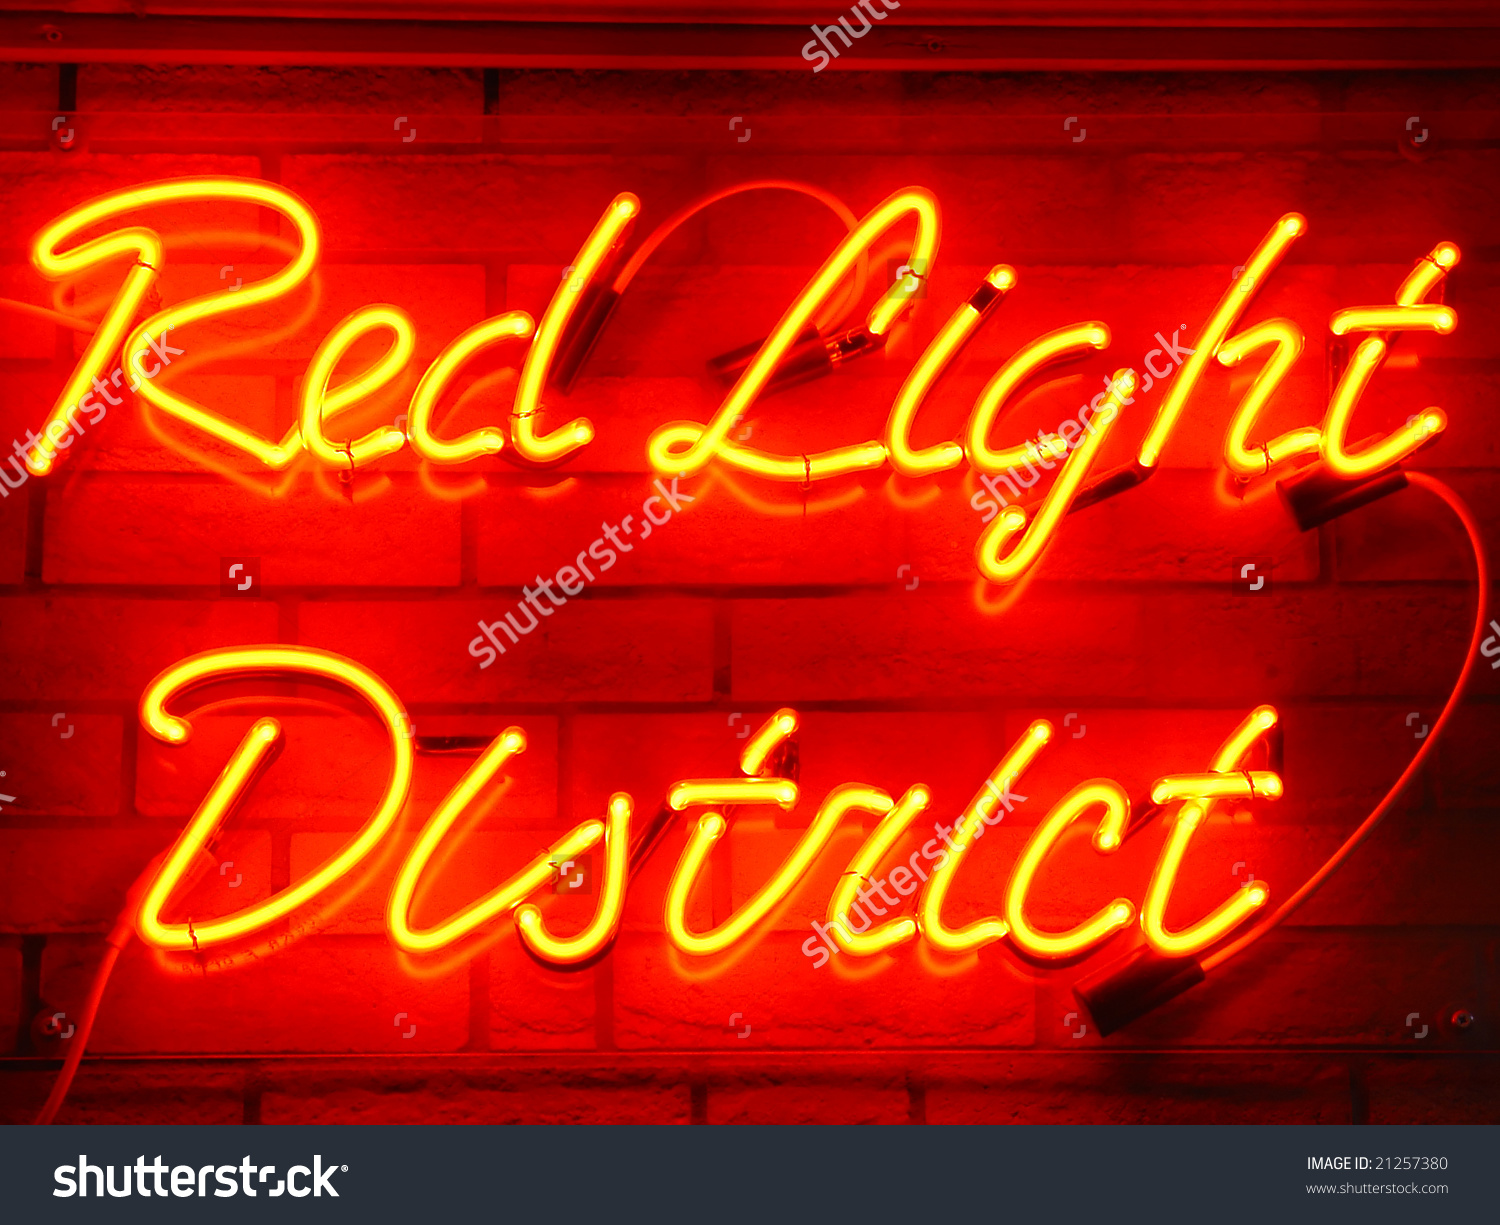 Red light district clipart.